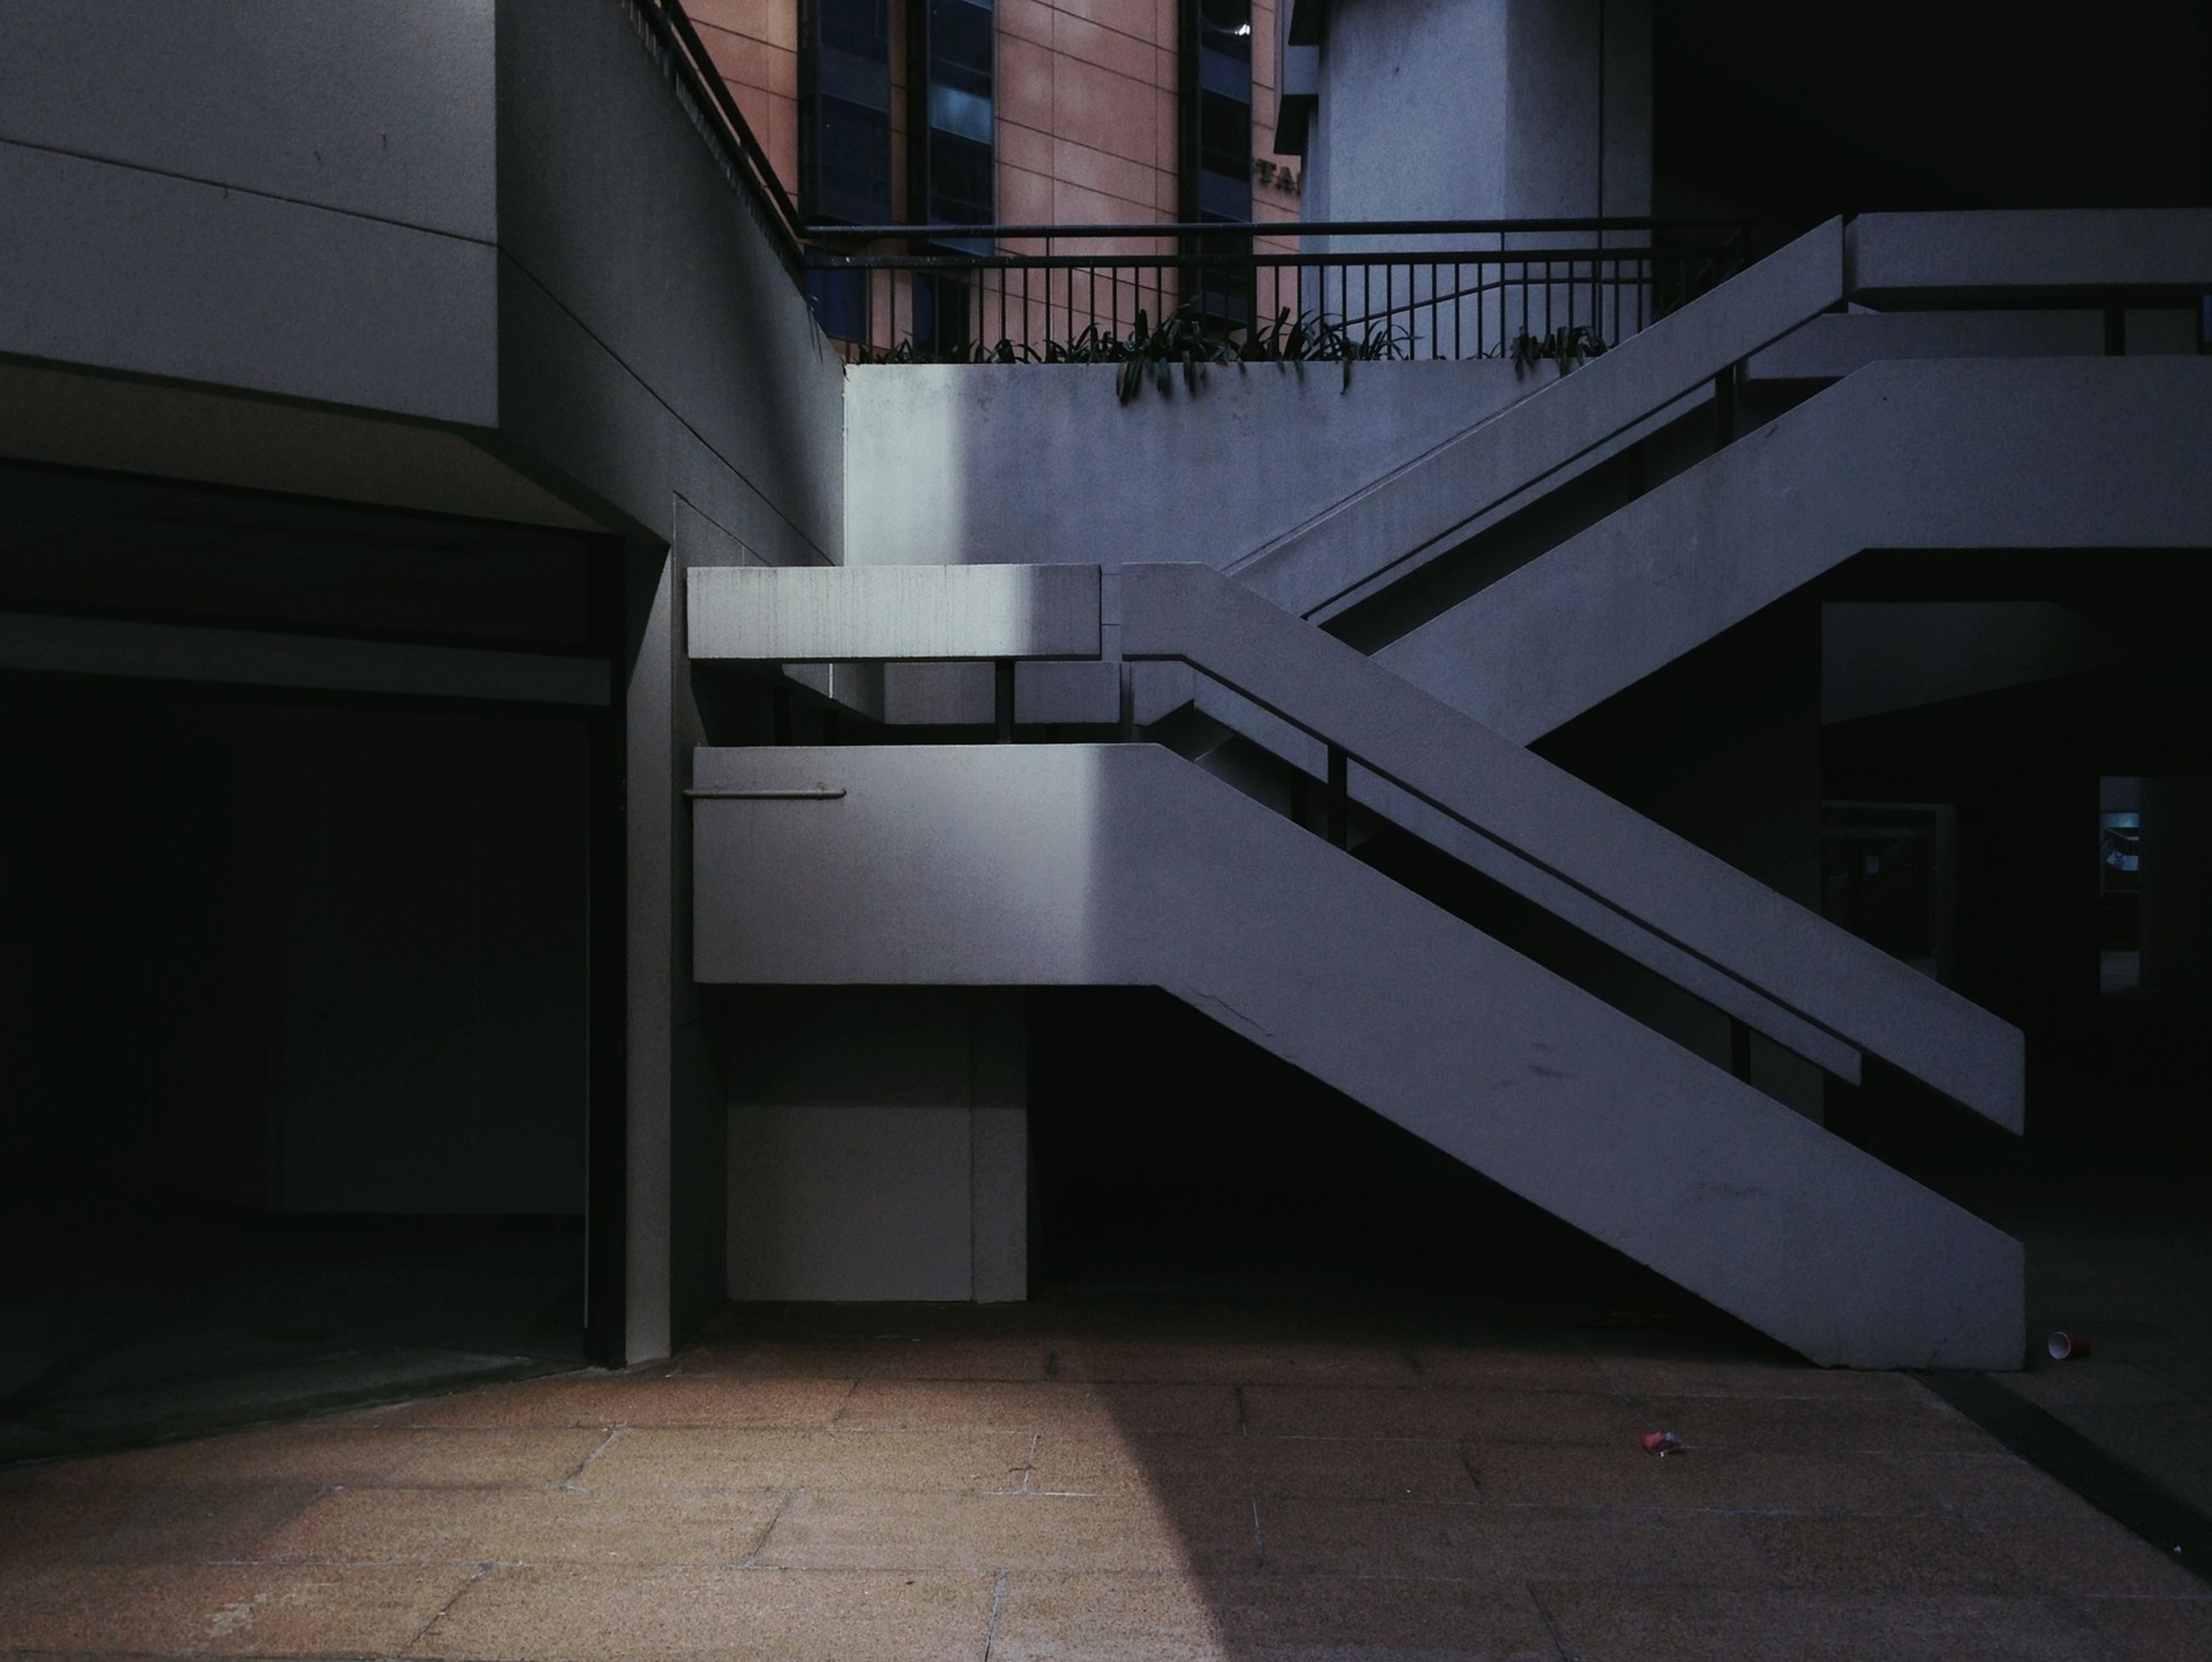 architecture, built structure, building exterior, building, city, window, residential building, sunlight, residential structure, shadow, empty, the way forward, railing, modern, no people, day, indoors, narrow, steps, tiled floor